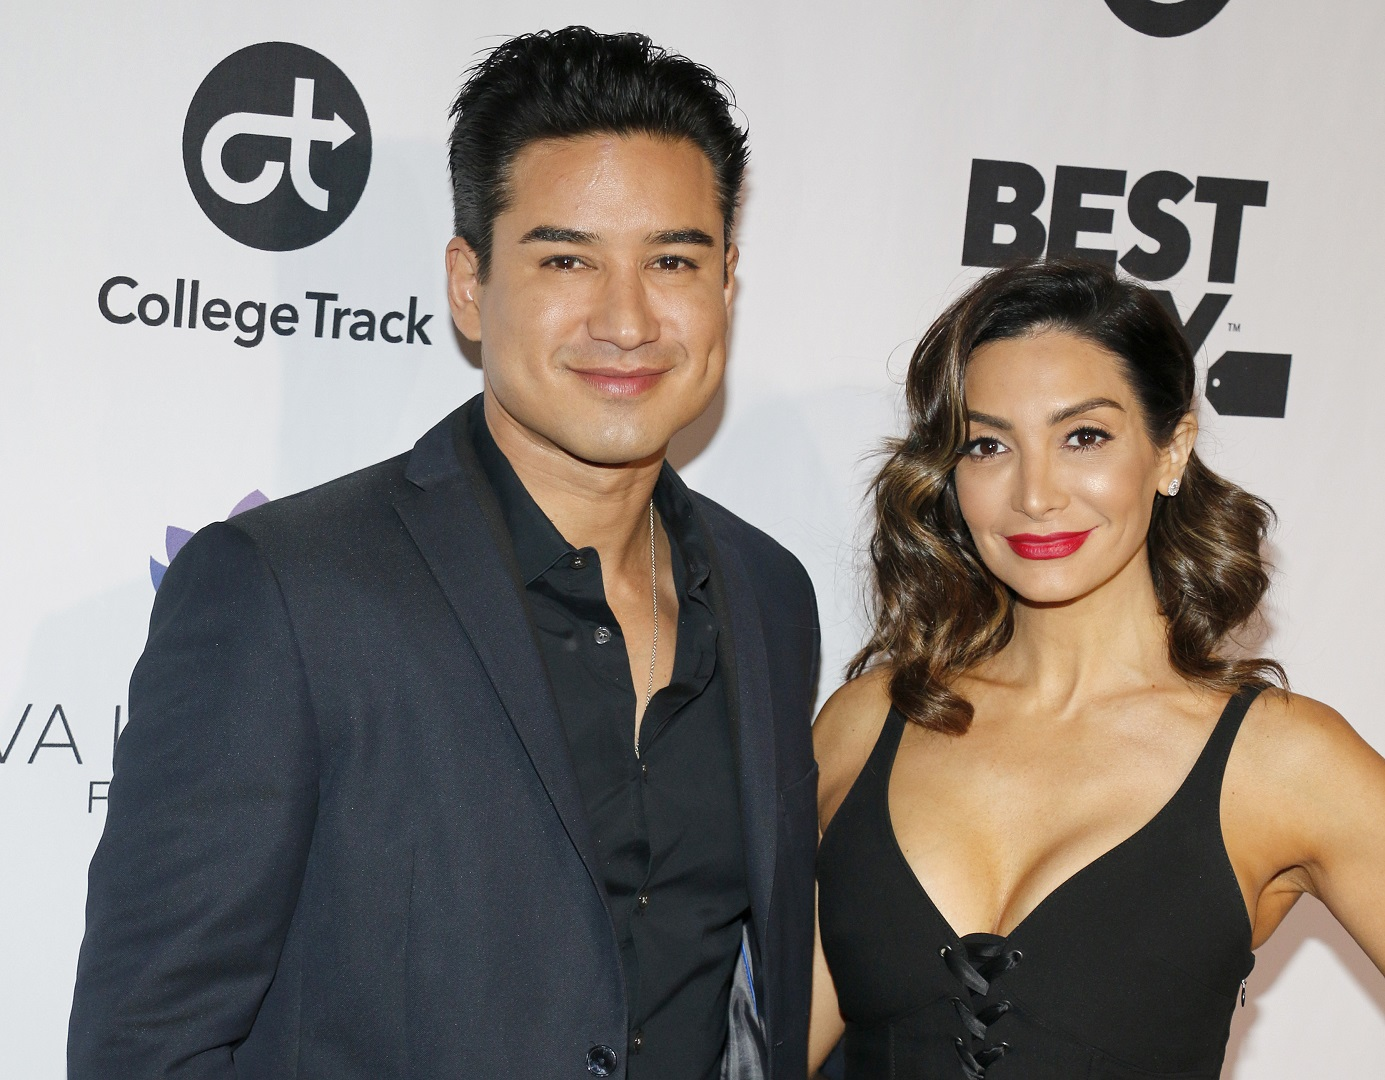 'It's a Boy!' Mario Lopez and Wife Courtney Welcome 'Healthy, Beautiful' Son Santino Rafael